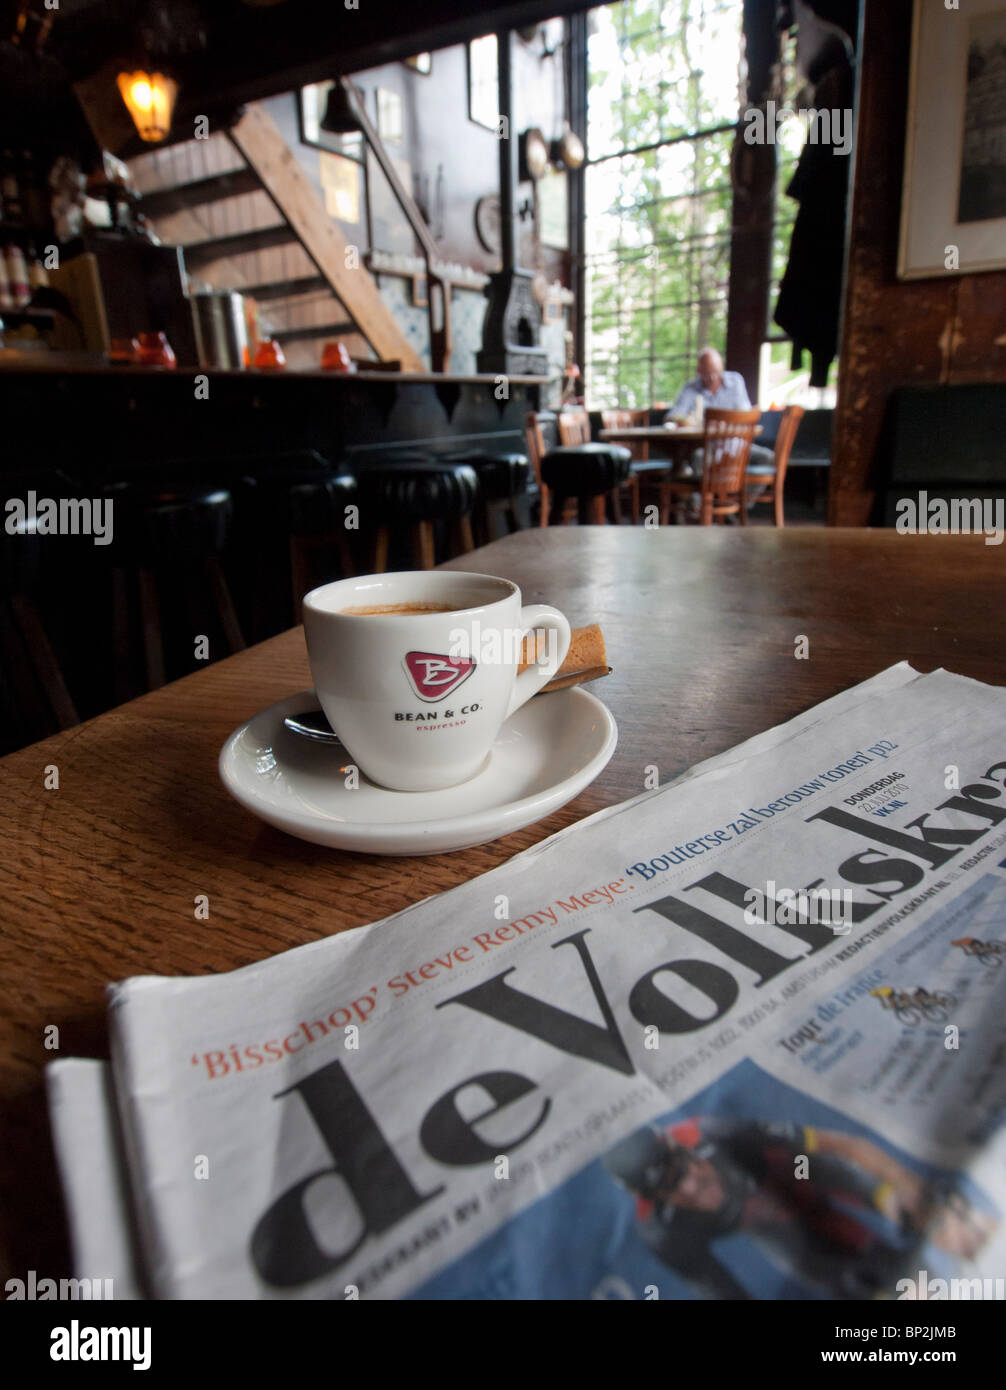 Detail of coffee and local newspaper in old Cafe Het Papeneiland in Jordaan district of Amsterdam in The Netherlands - Stock Image